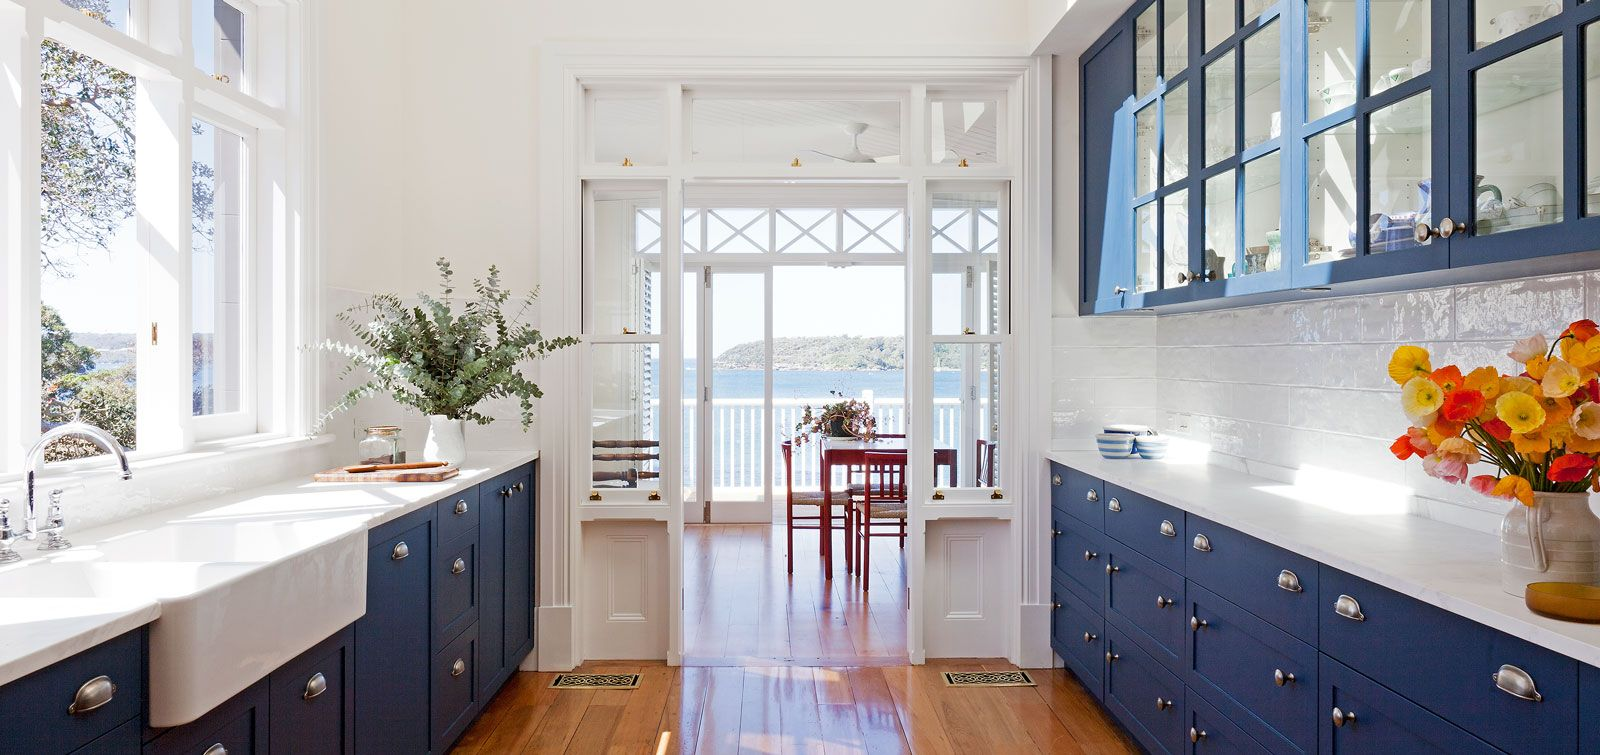 Blue Cabinets White Counter Beach View Yes Please